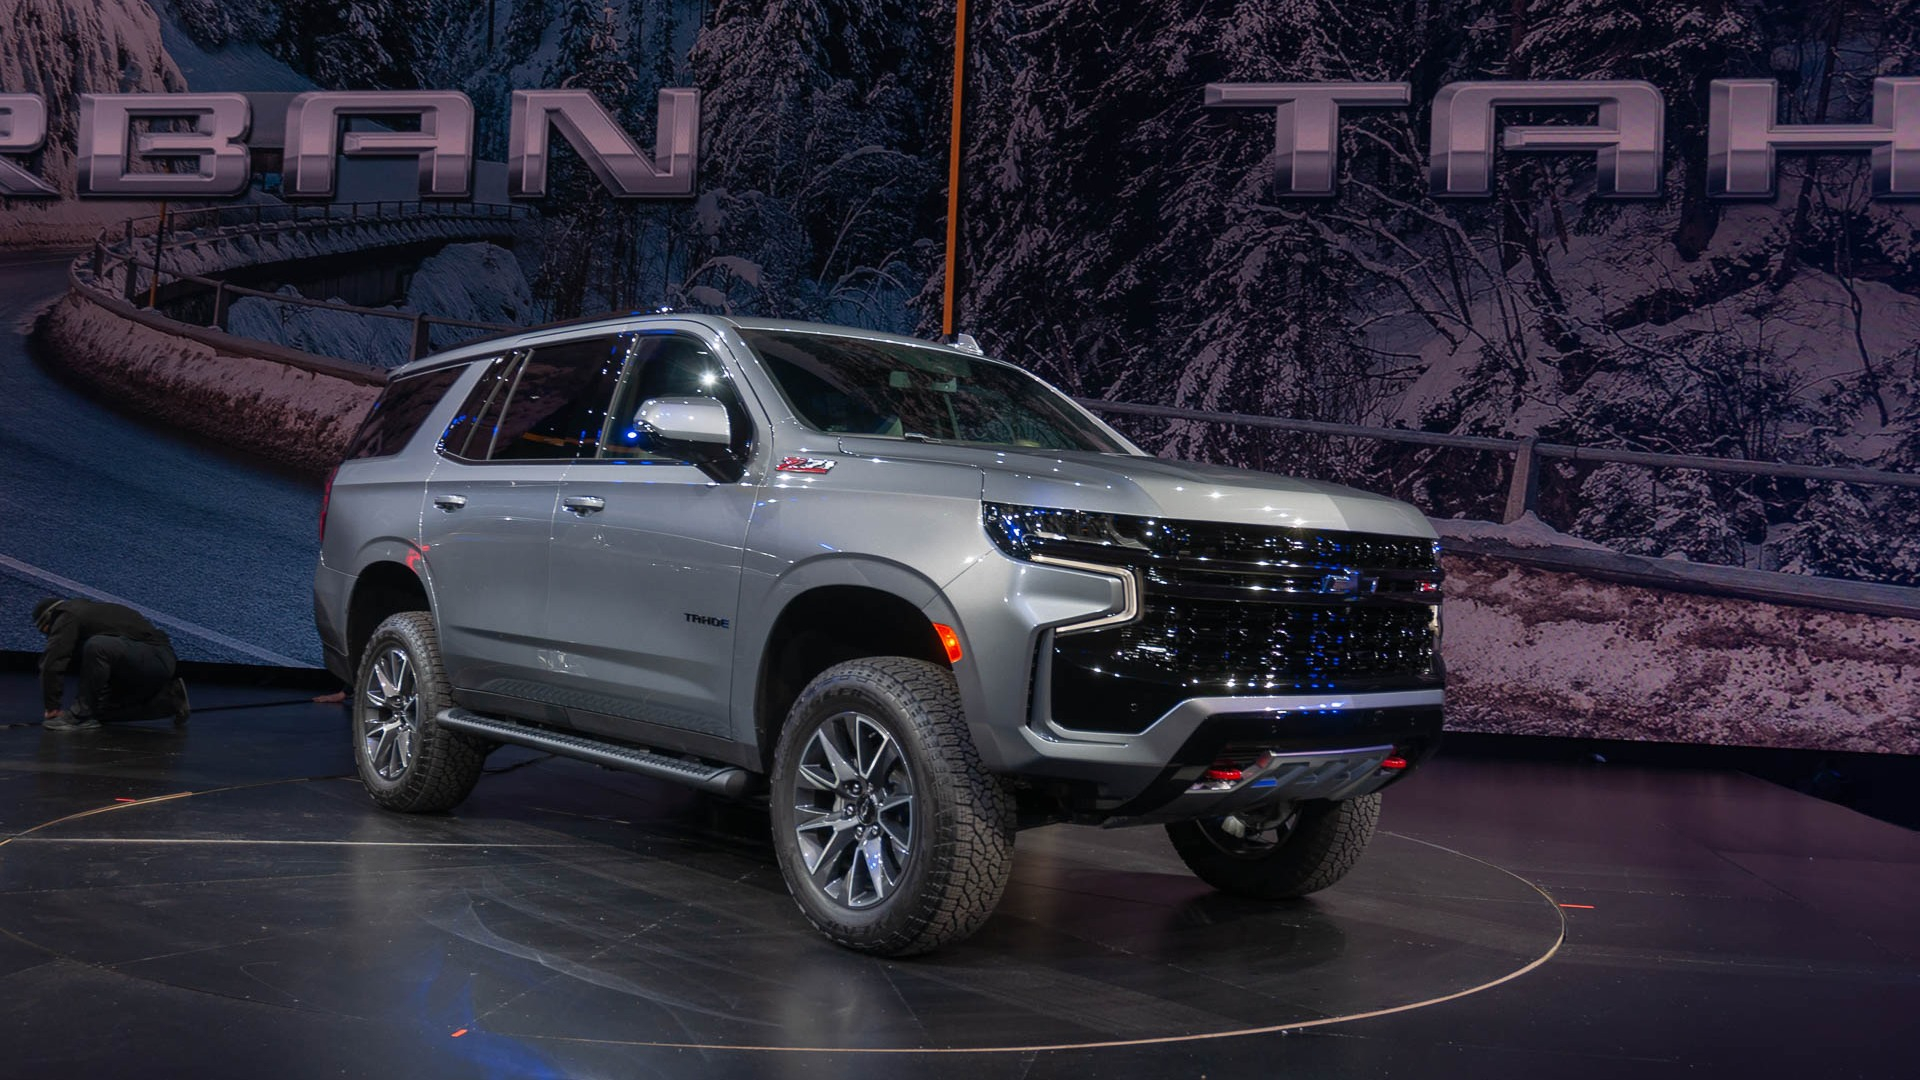 2021 Chevrolet Tahoe And Suburban Double Down On Tech, Space 2021 Chevrolet Silverado Towing Capacity, Transmission, Used